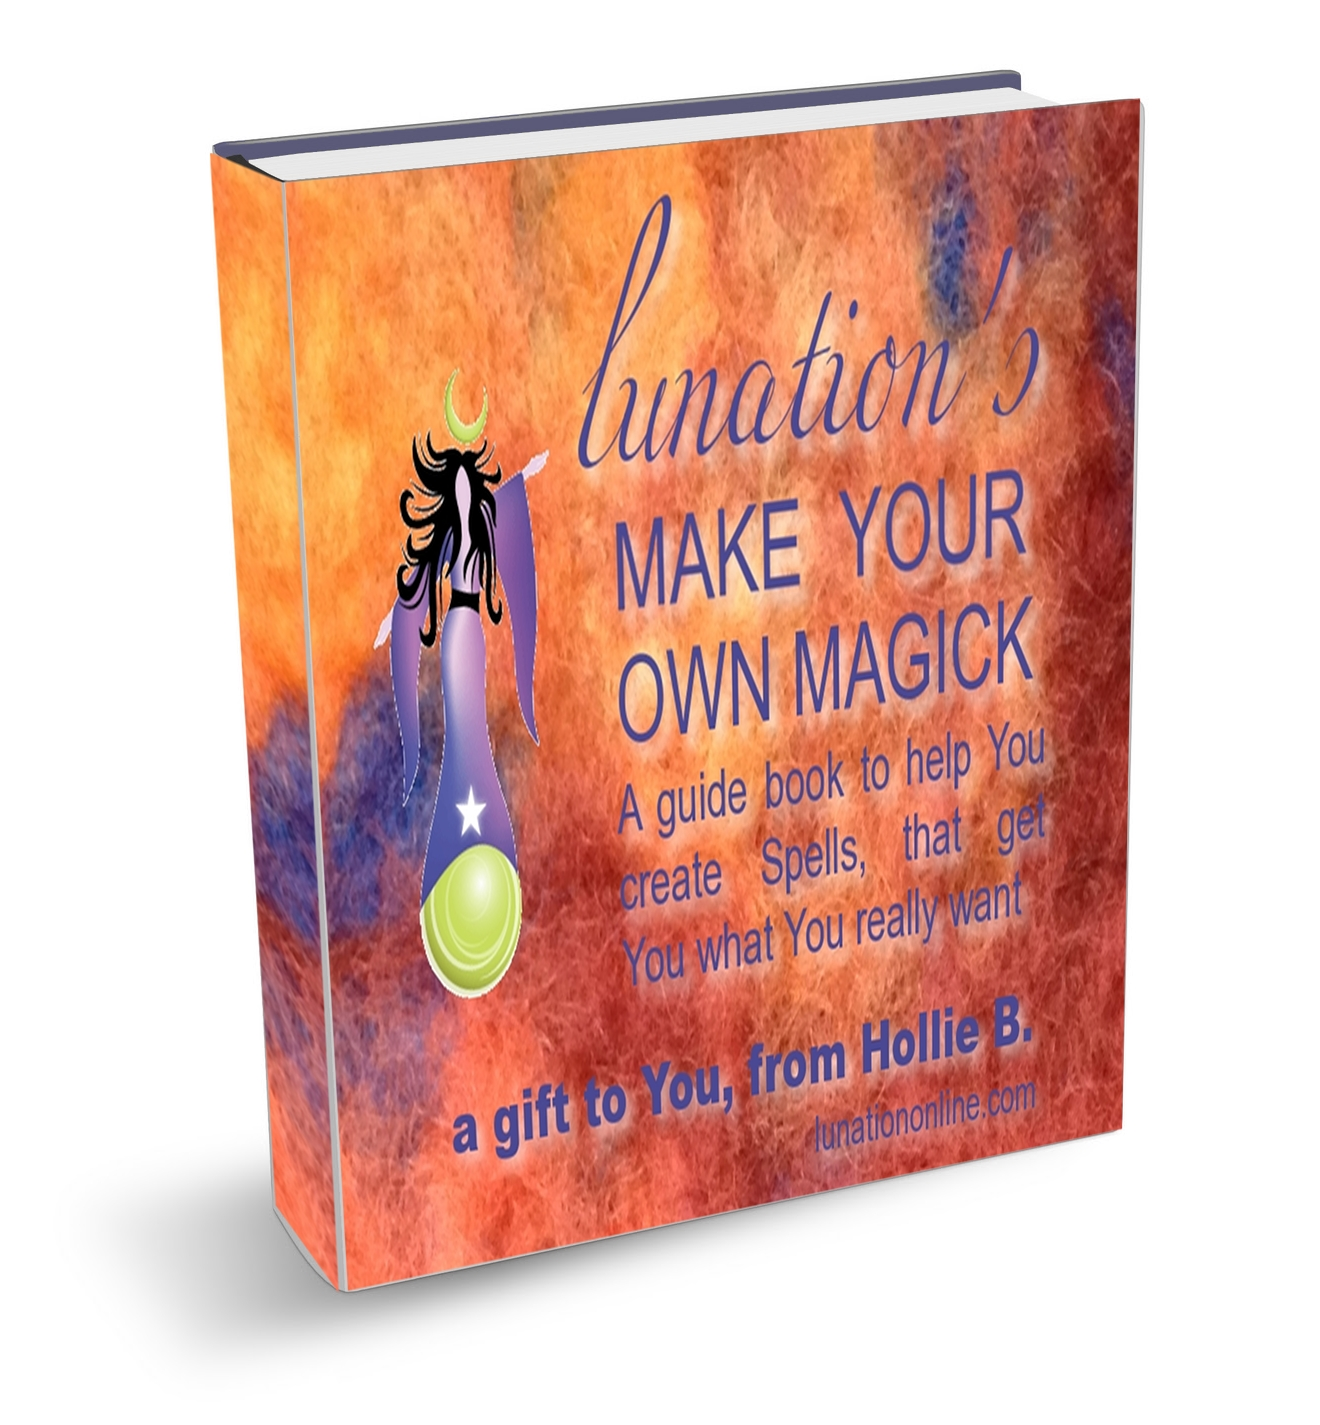 Lunations Make your Own Magick Guide Book